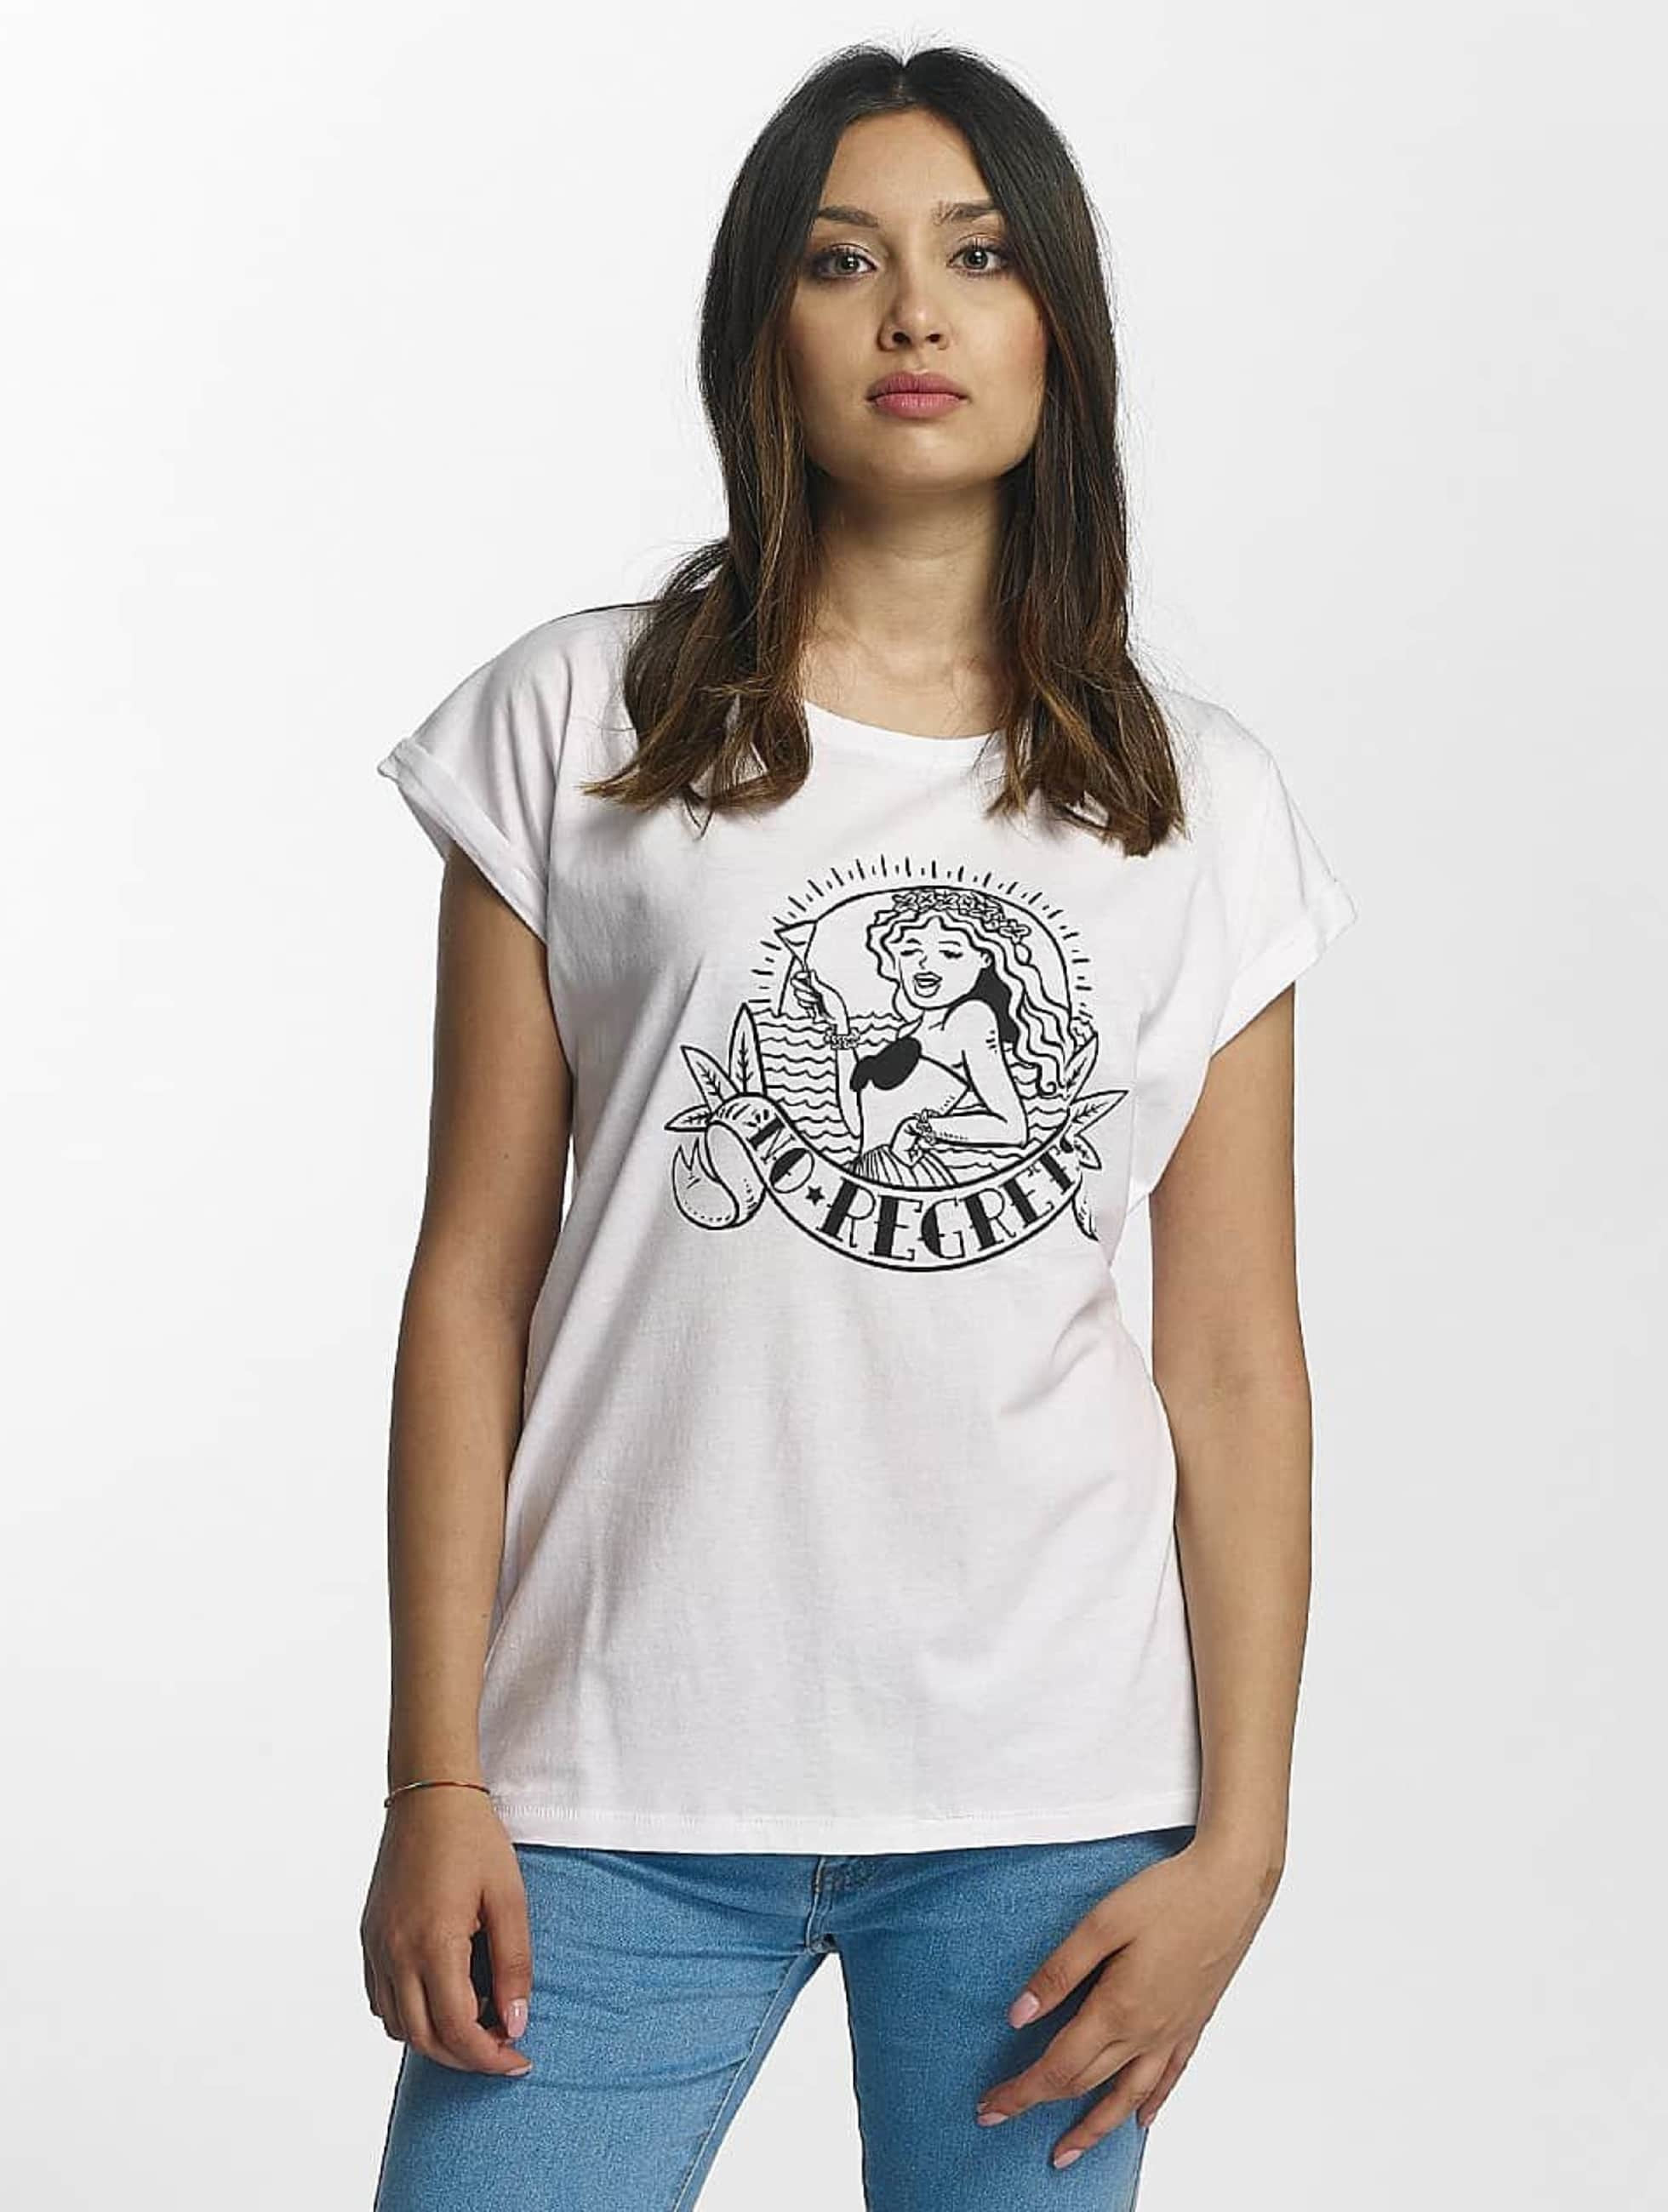 Mister Tee Frauen T-Shirt No Regrets in weiß